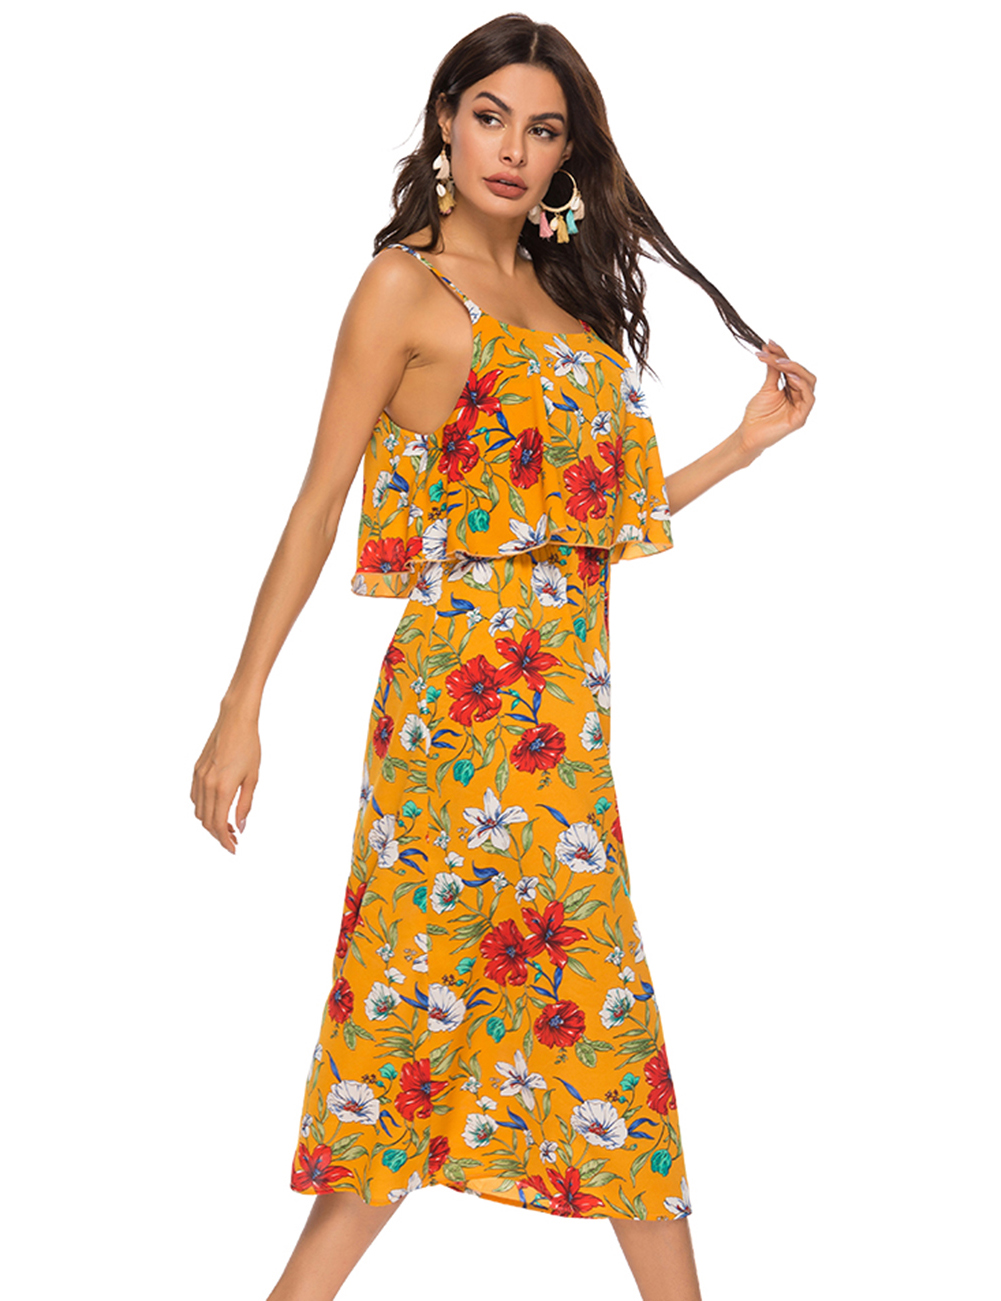 //cdn.affectcloud.com/hexinfashion/upload/imgs/Dress/Maxi_Dress/VZ190494-YE1/VZ190494-YE1-201911055dc123243a4af.jpg